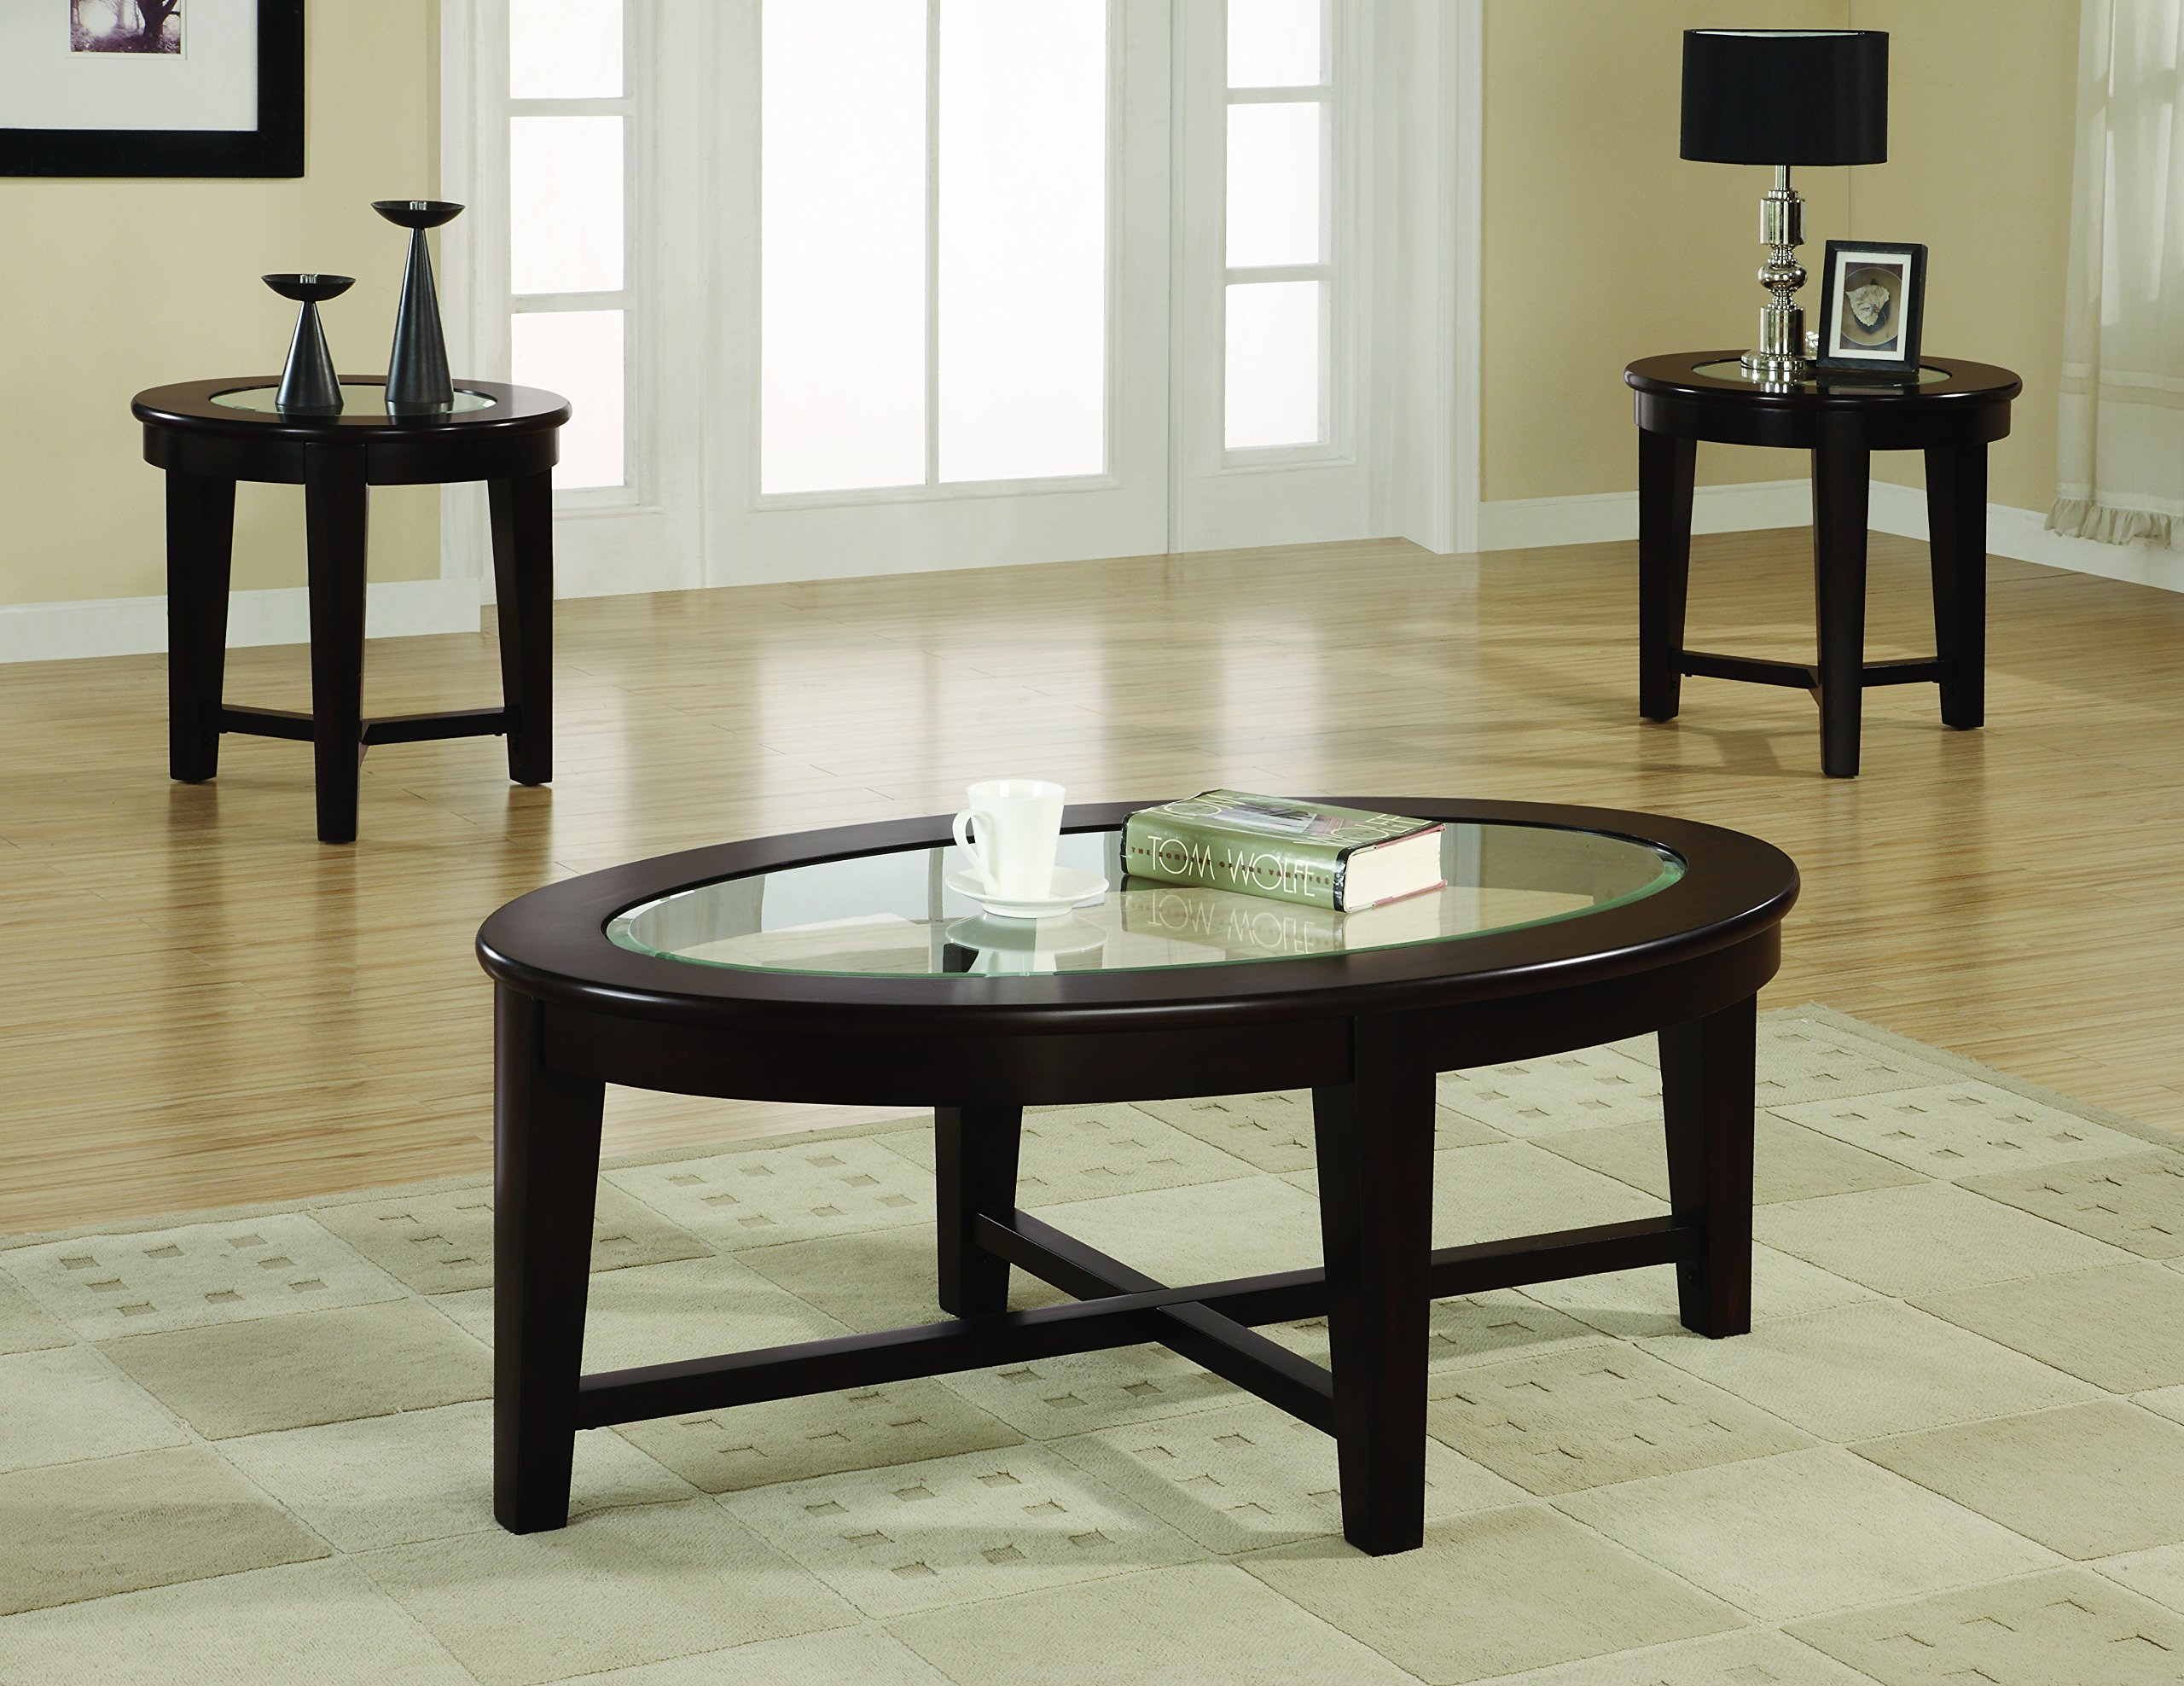 Coaster Home Furnishings 701511 3-Piece Contemporary Living Room Set, Cappuccino